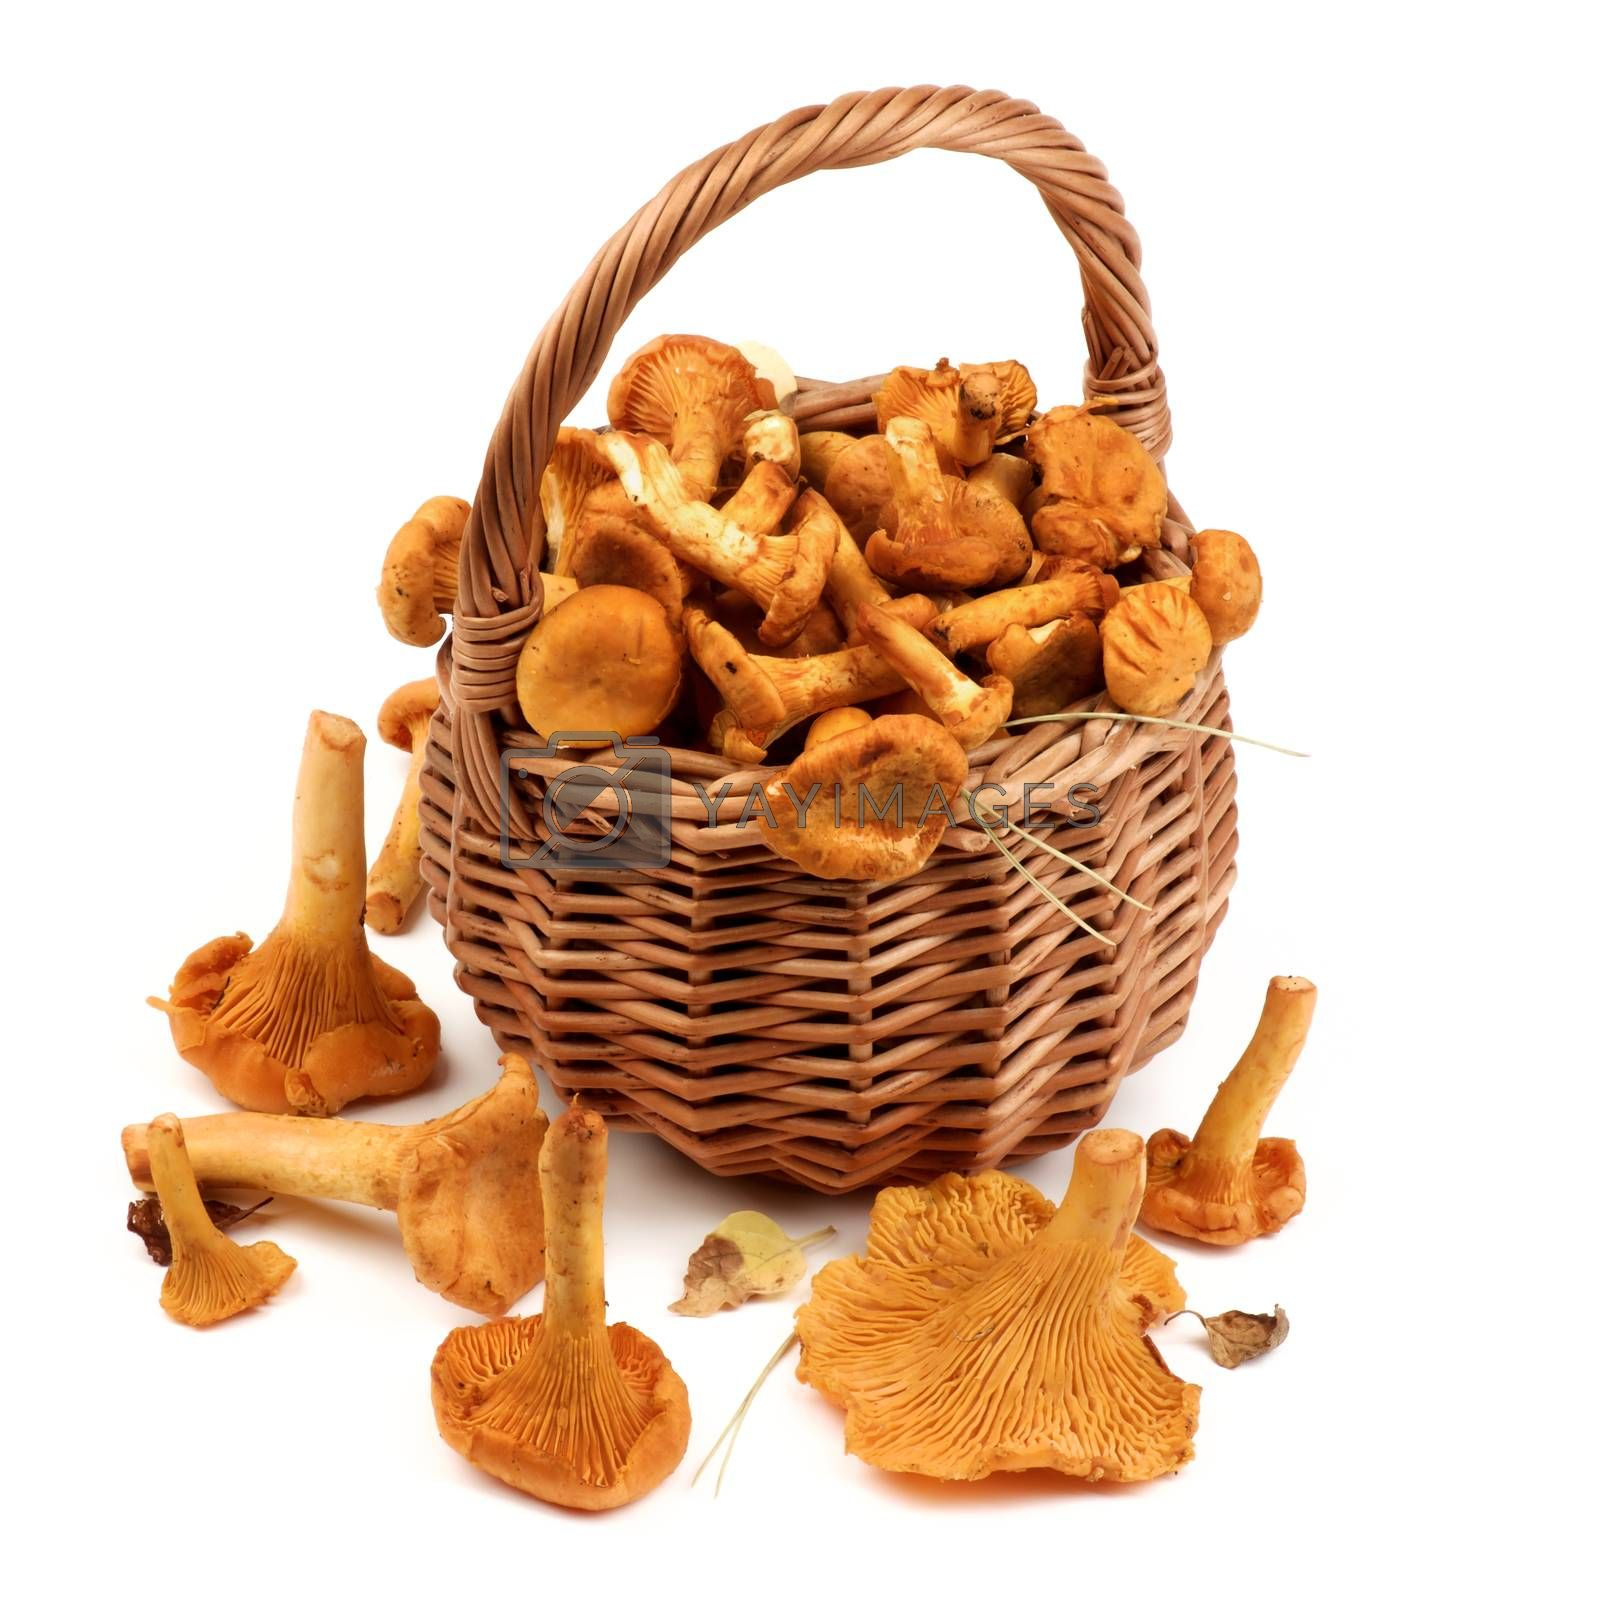 Arrangement of Raw Chanterelles with Dry Leafs and Stems in Wicker Basket closeup on White background